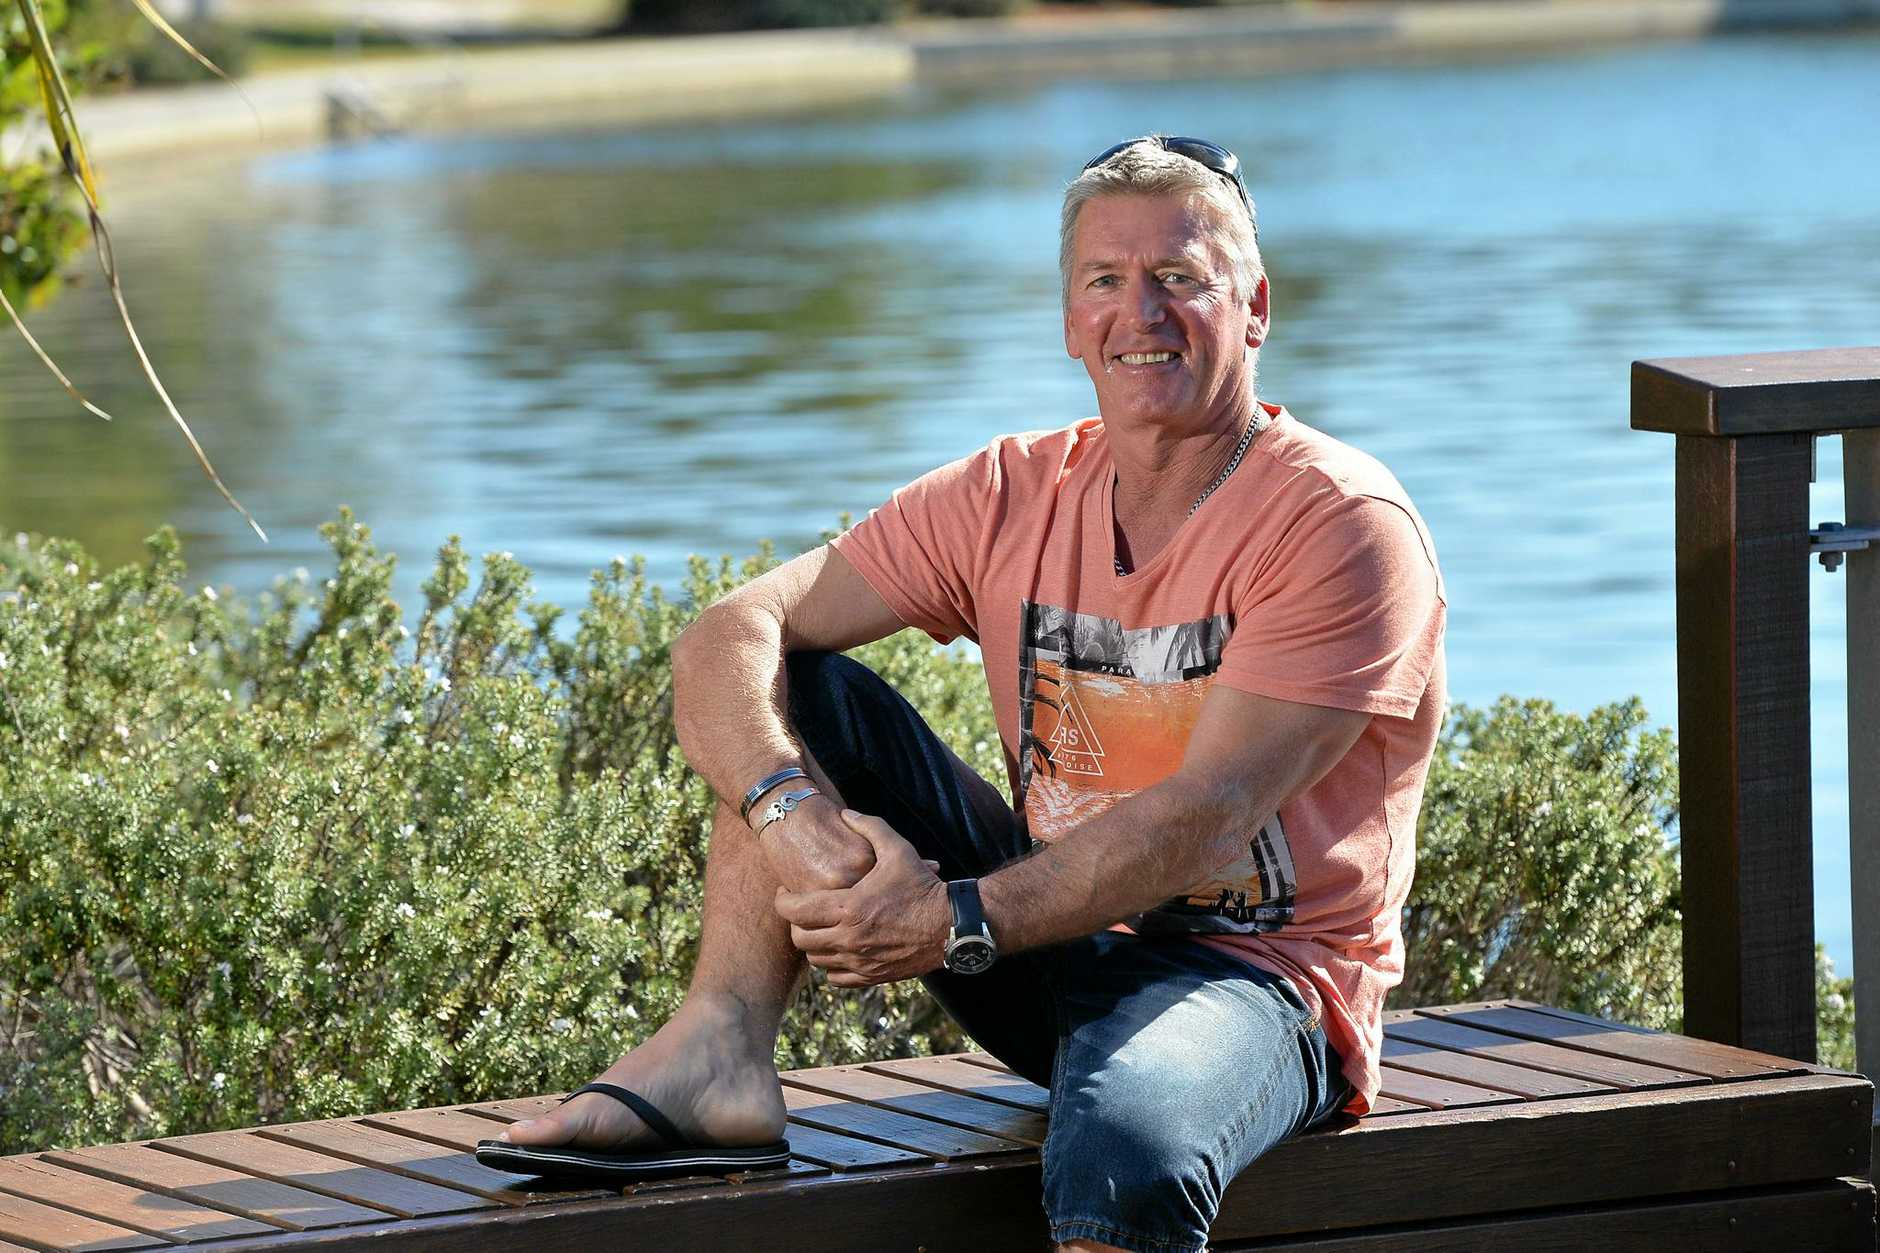 A LOT MORE LIFE TO LIVE: Tony Sullivan, a former lifesaver and IRB World Champion, has taken on the challenge to beat a diagnosis of terminal cancer by turning his diet and life upside down.